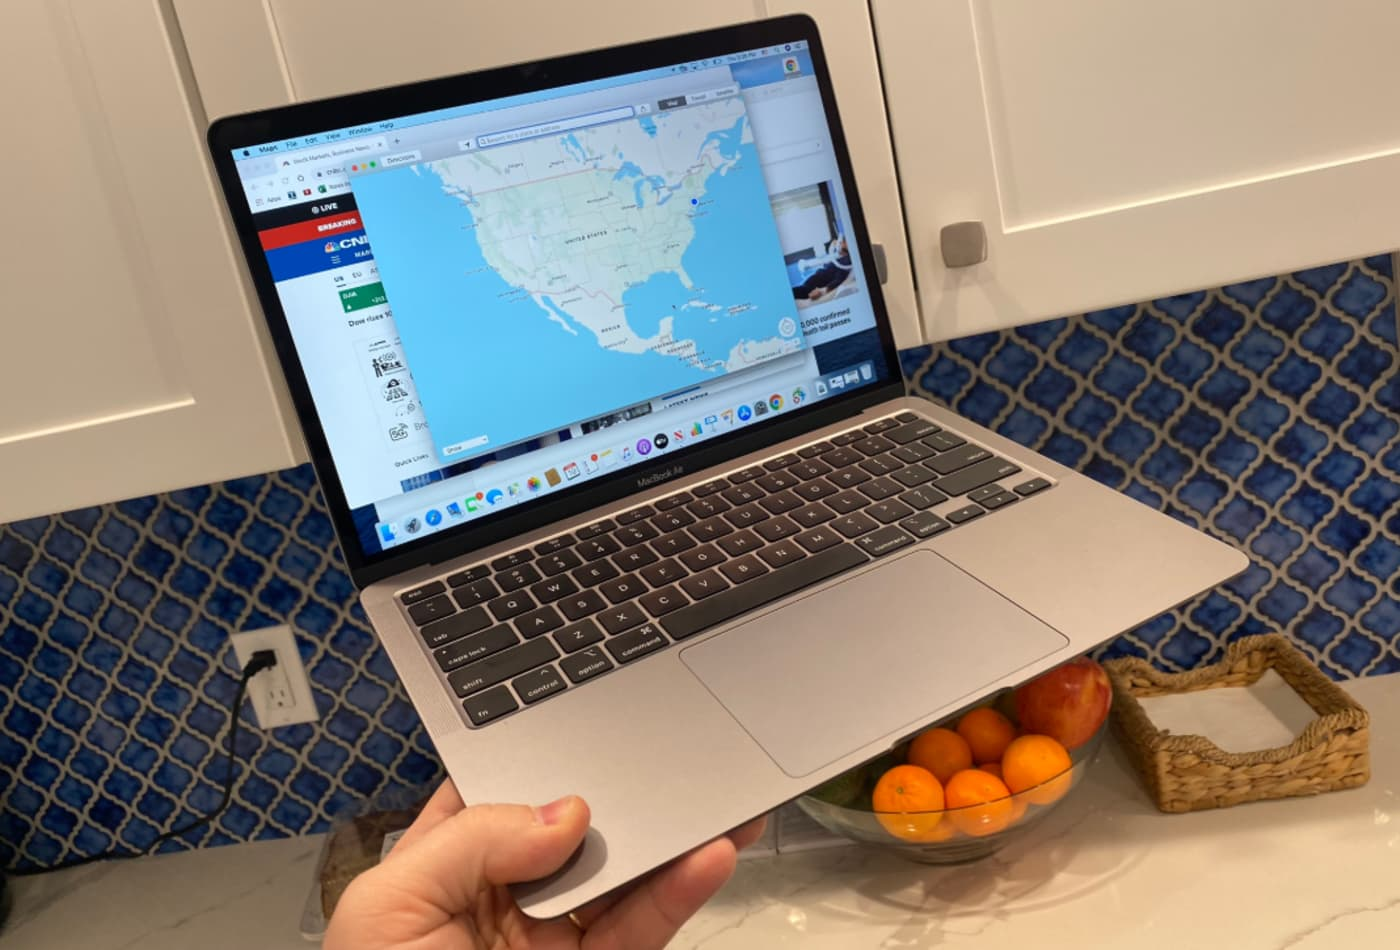 The new MacBook Air is the best laptop for Mac fans — and Apple finally fixed the keyboard